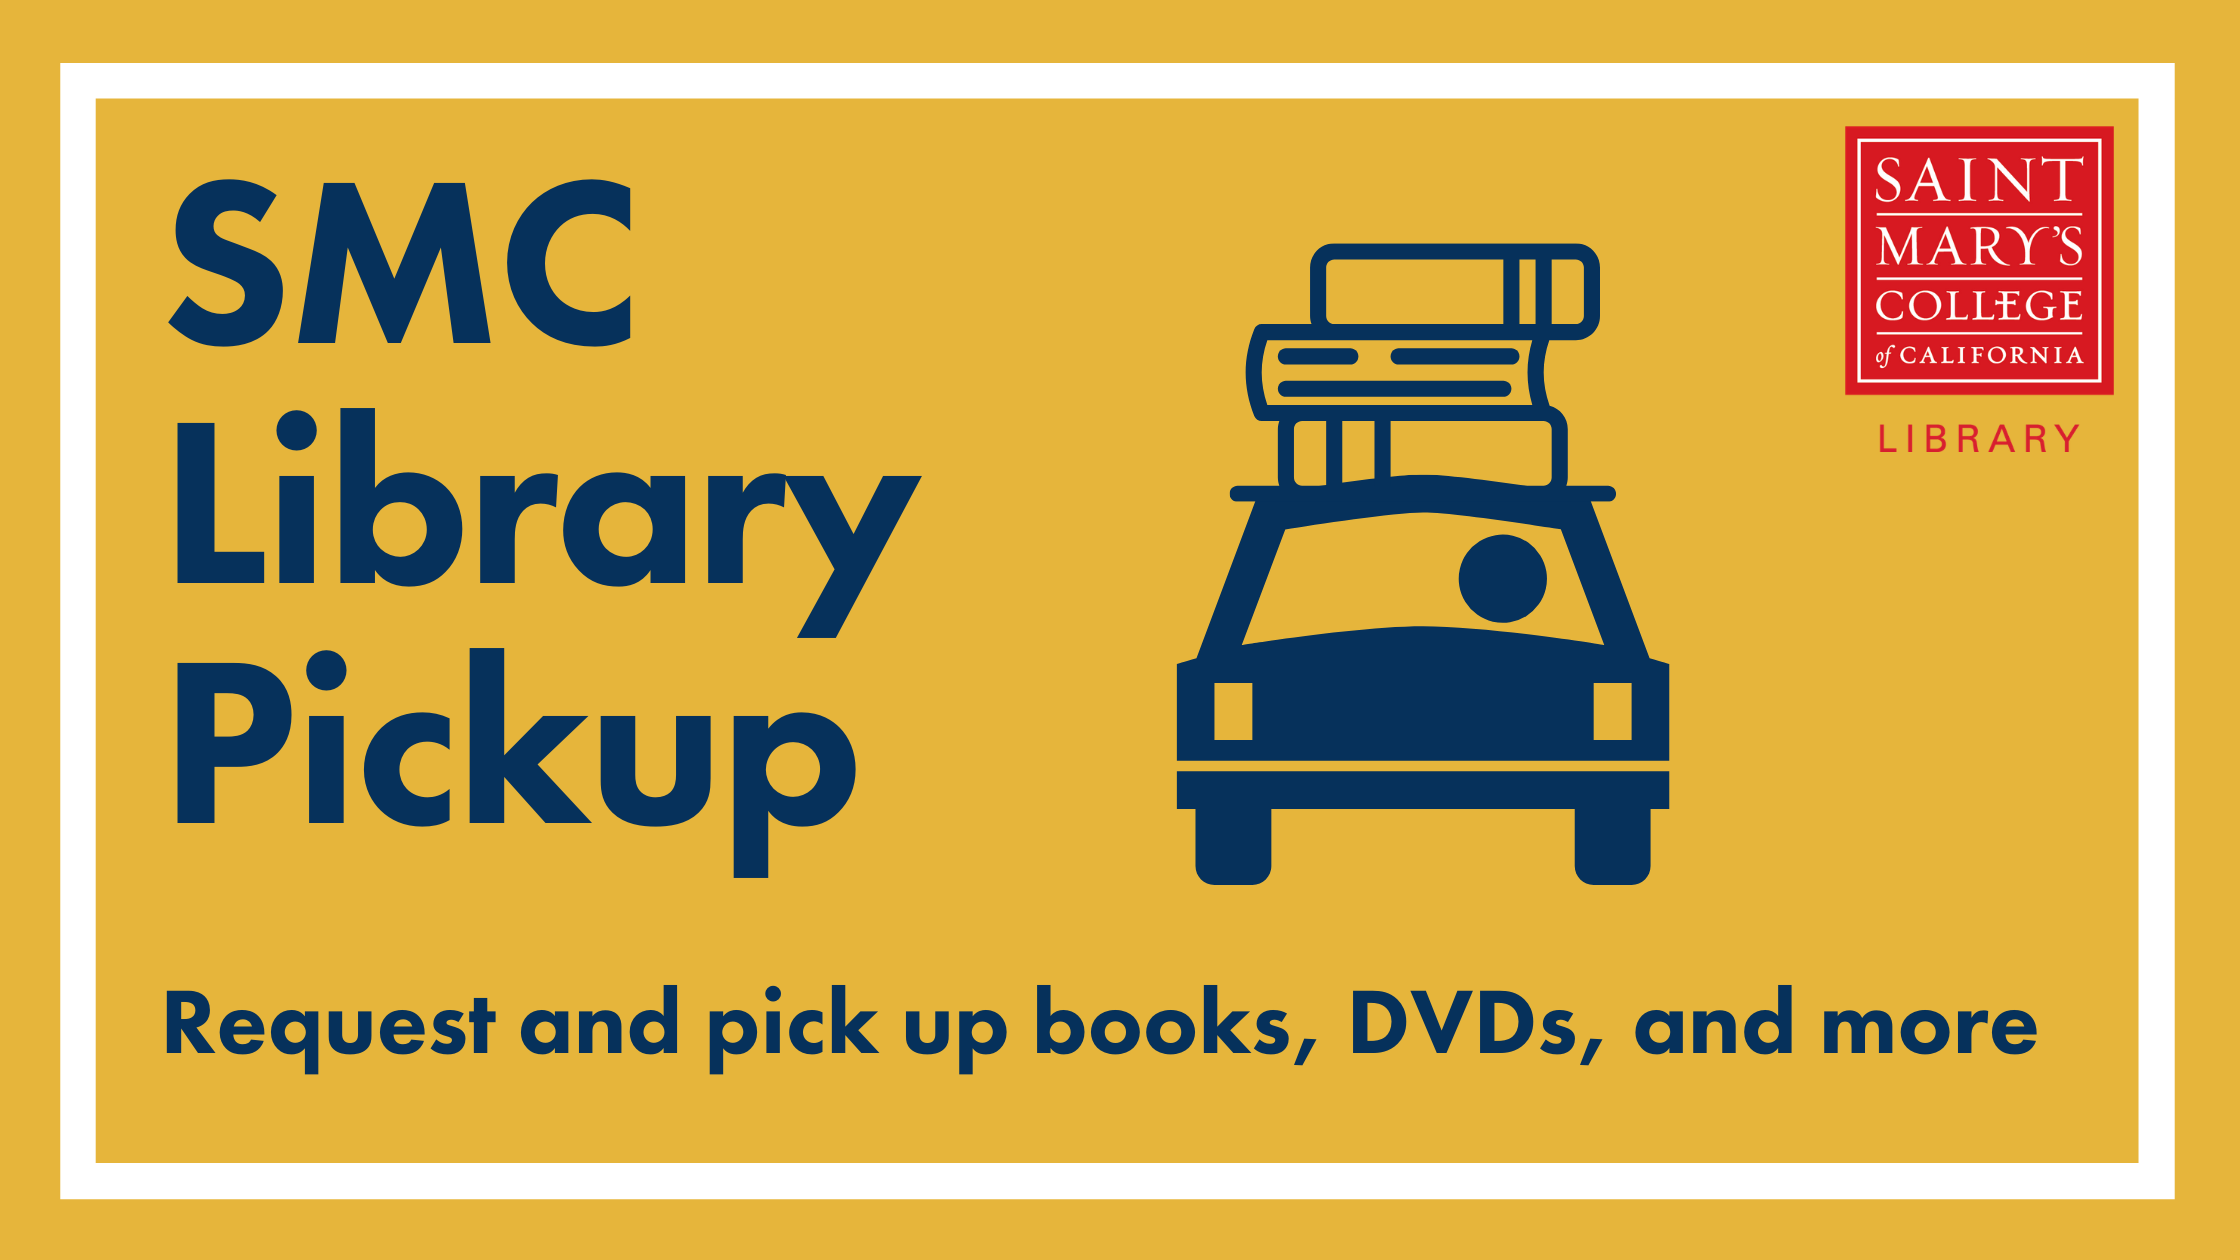 SMC Library Pickup: Request and pick up books, DVDs, and more